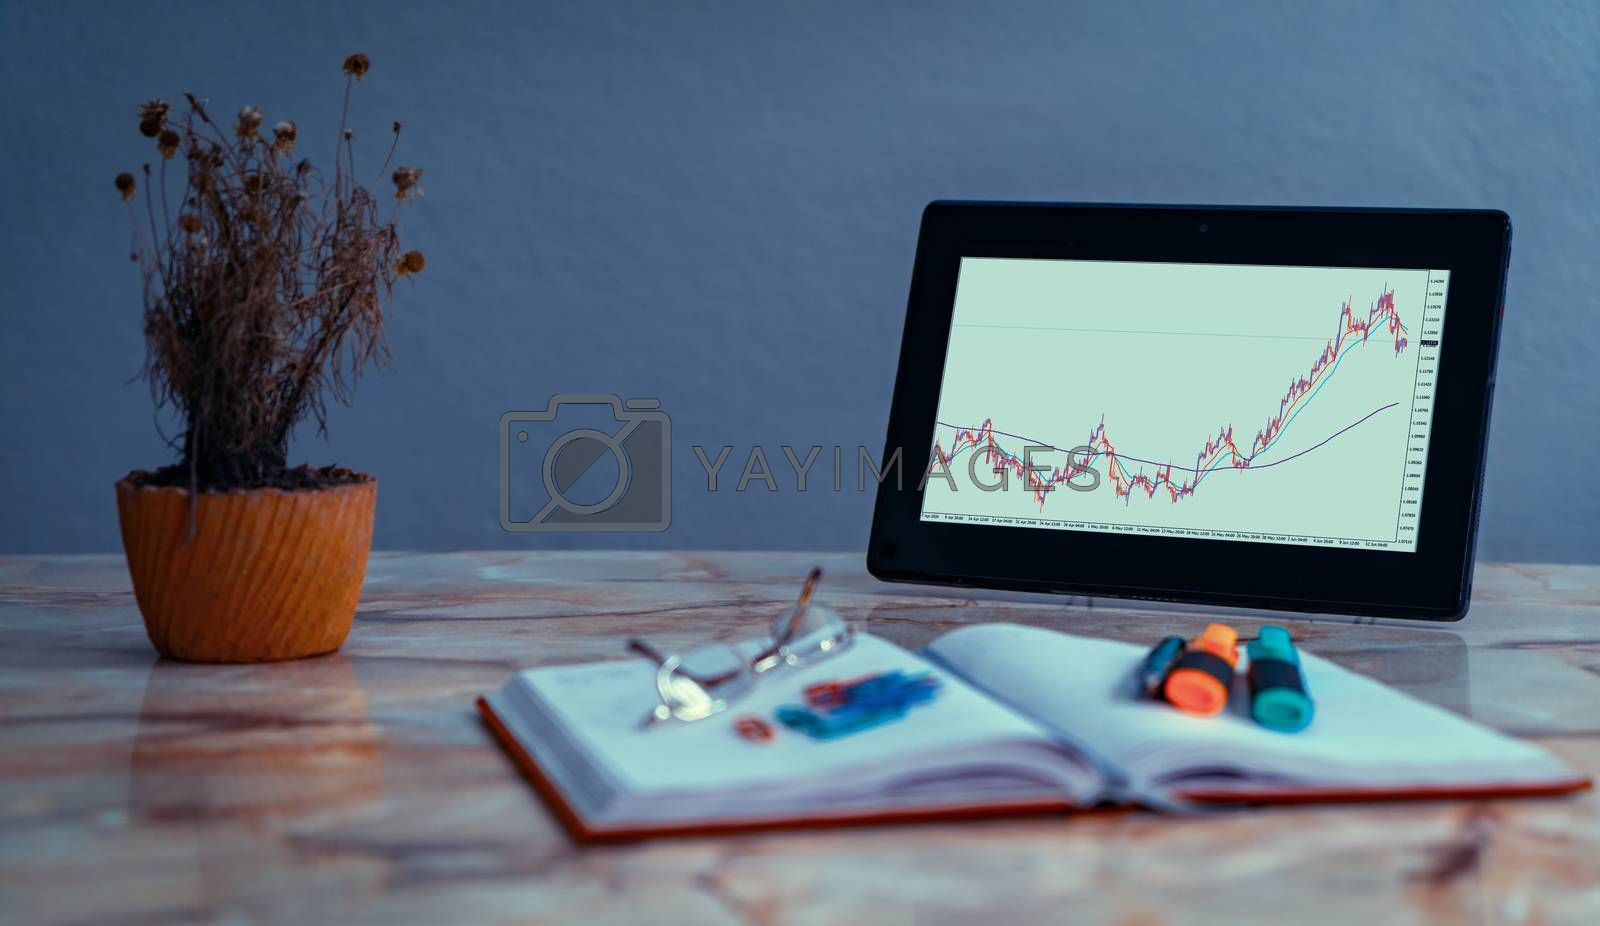 Screen of a tablet on a desk with a chart of currency pairs. On the desk there is an out of focus notebook